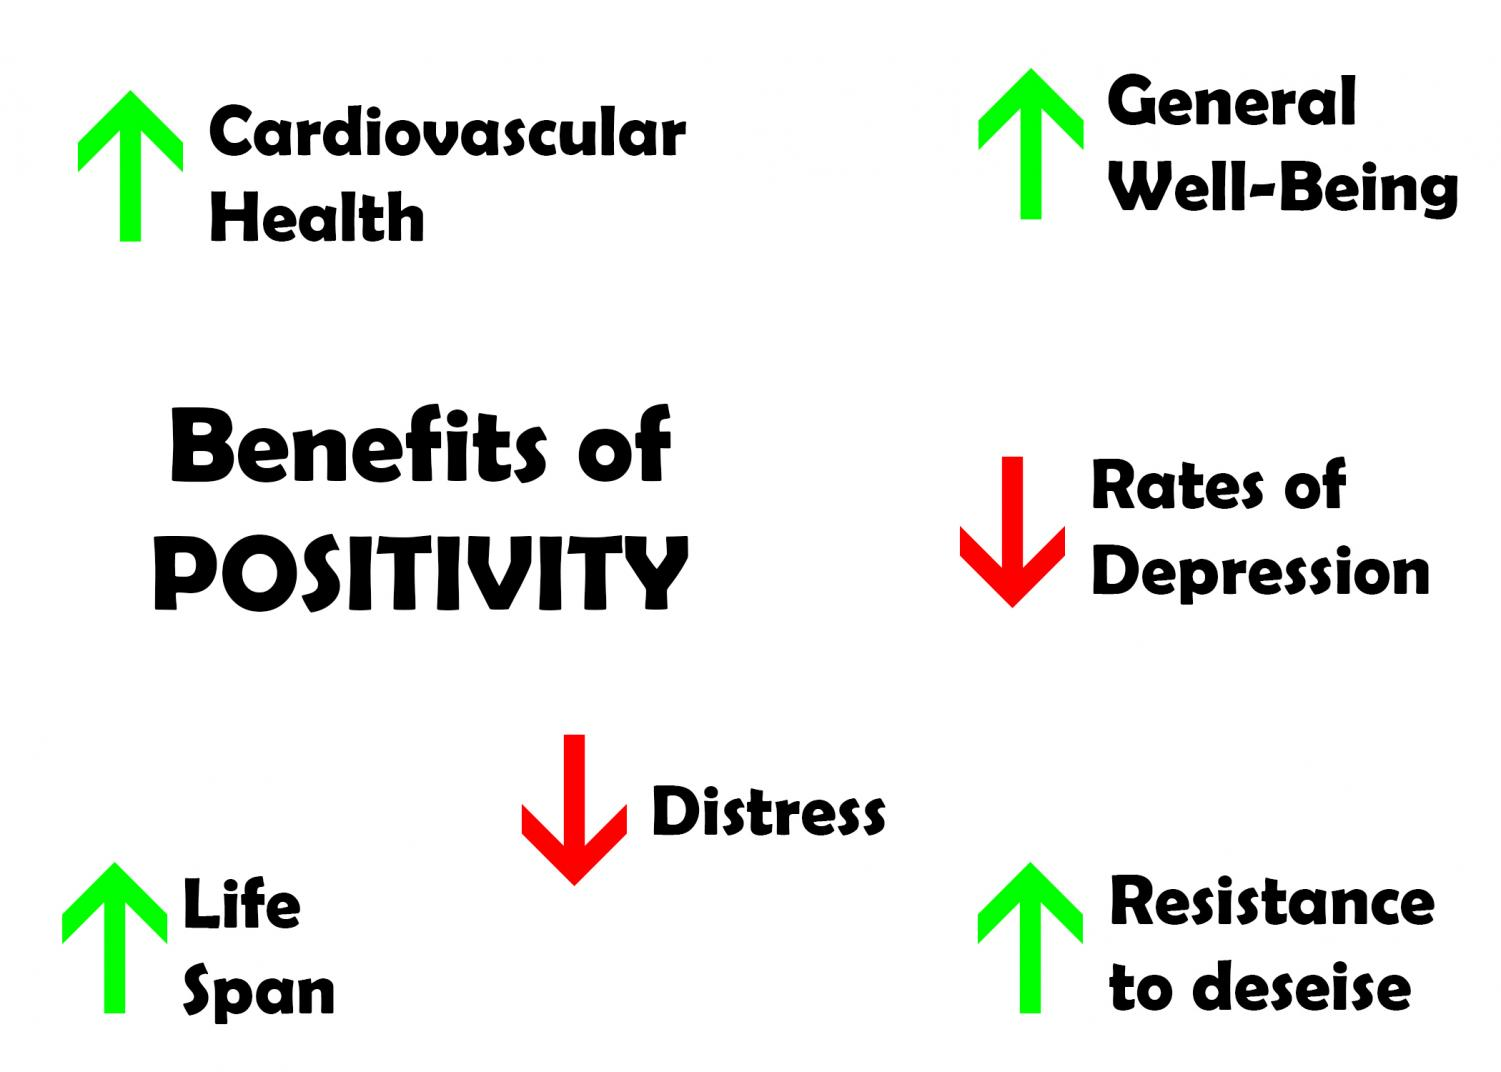 Positivity has a number of benefits for health and mental well-being. All statistics from the Mayo Clinic.